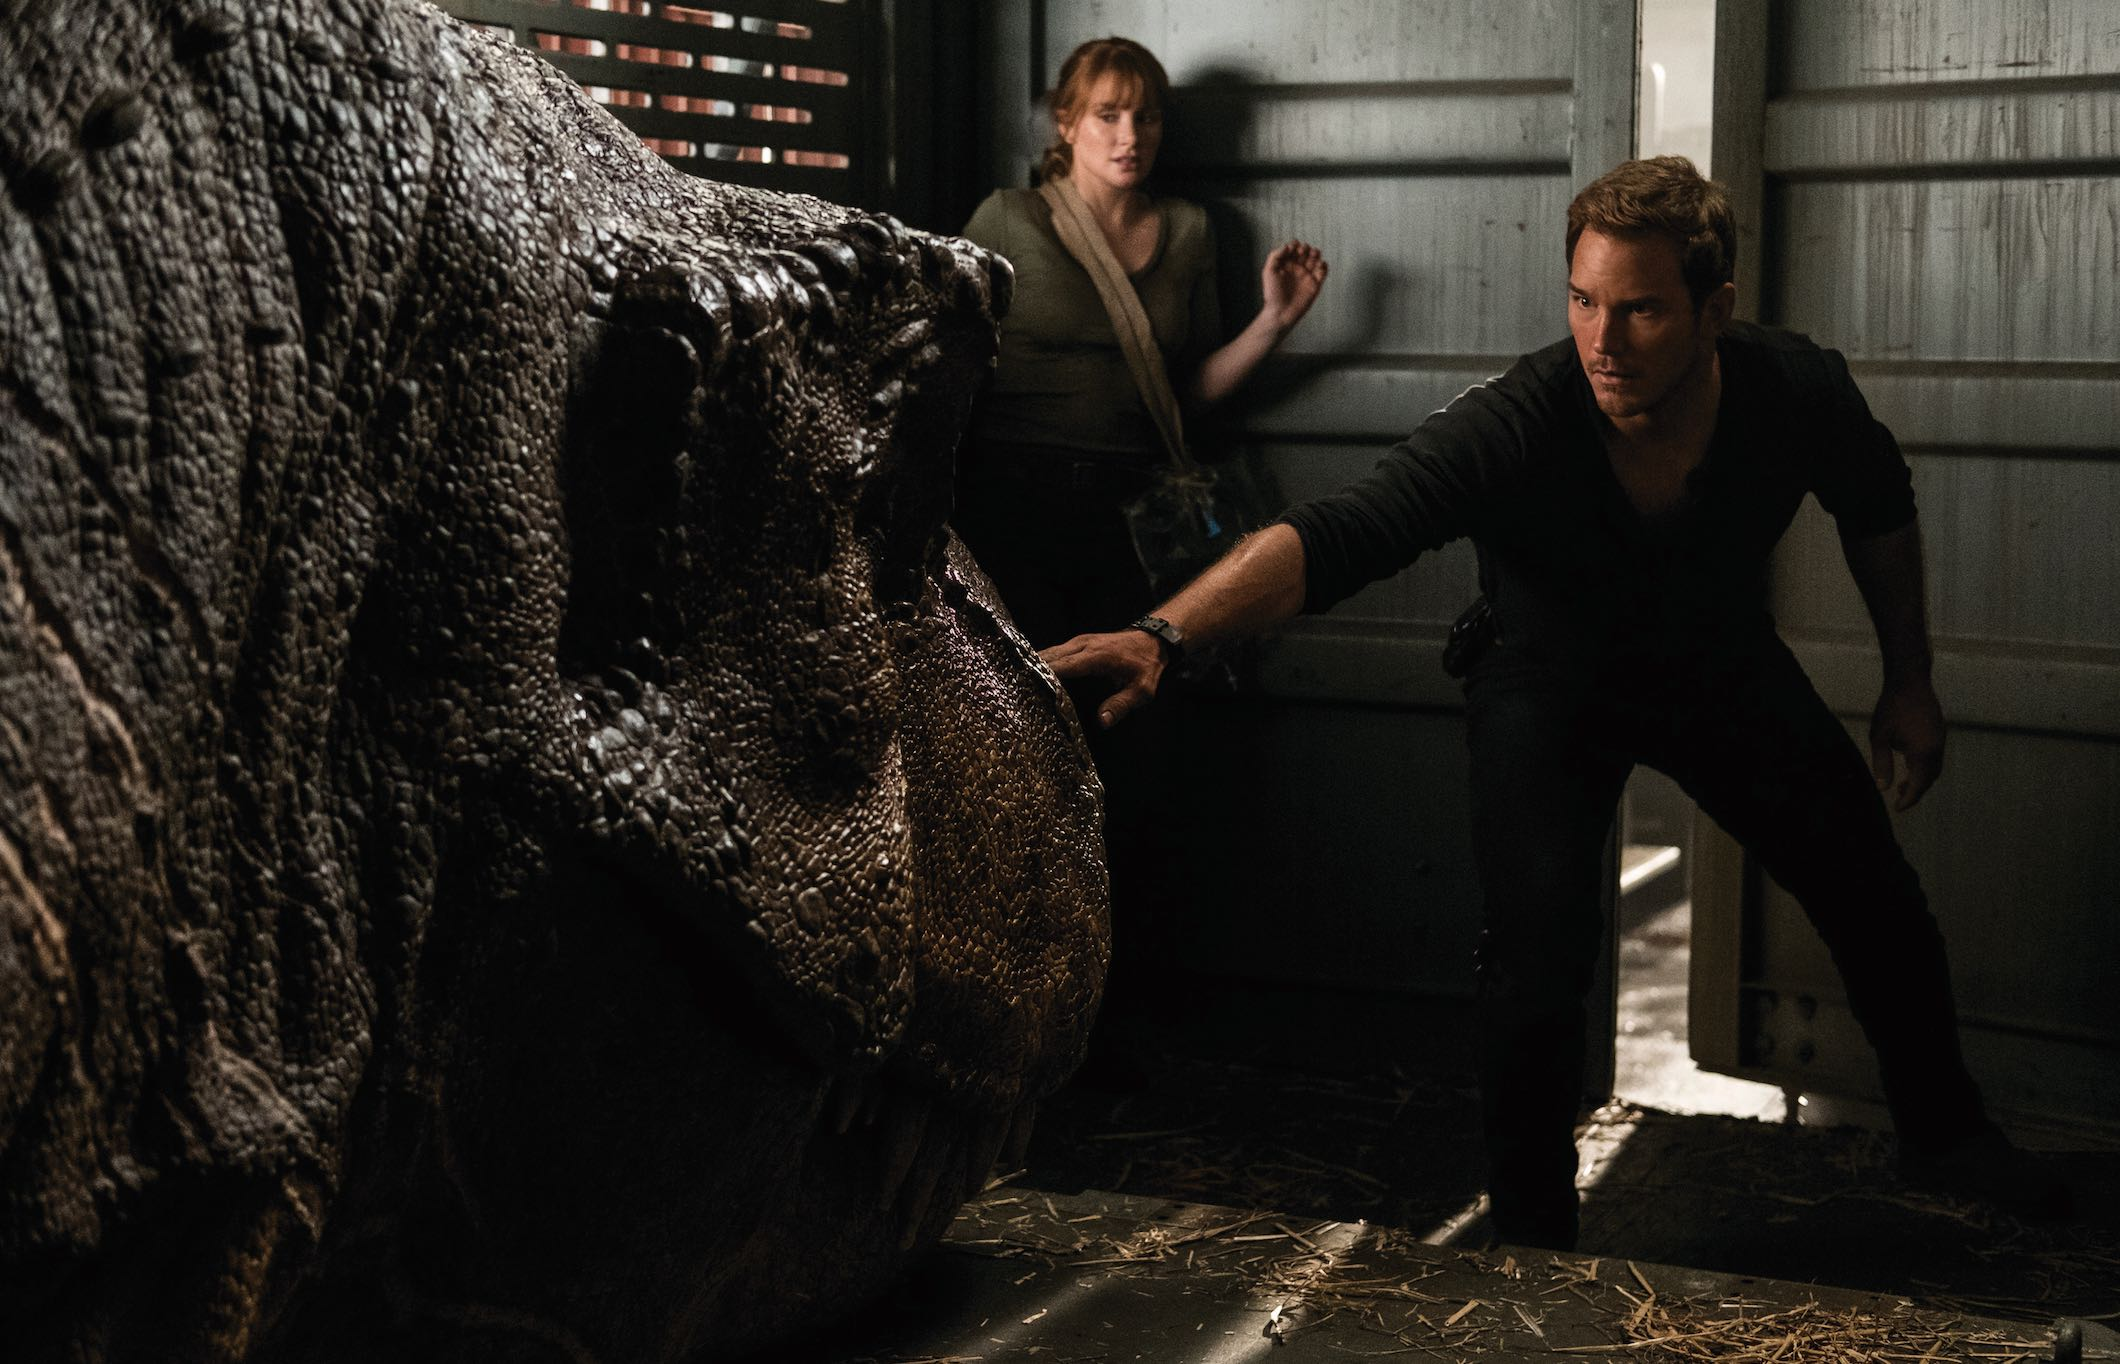 Jurassic World Fallen Kingdom Chris Pratt Bryce Dallas Howard Dinosaur